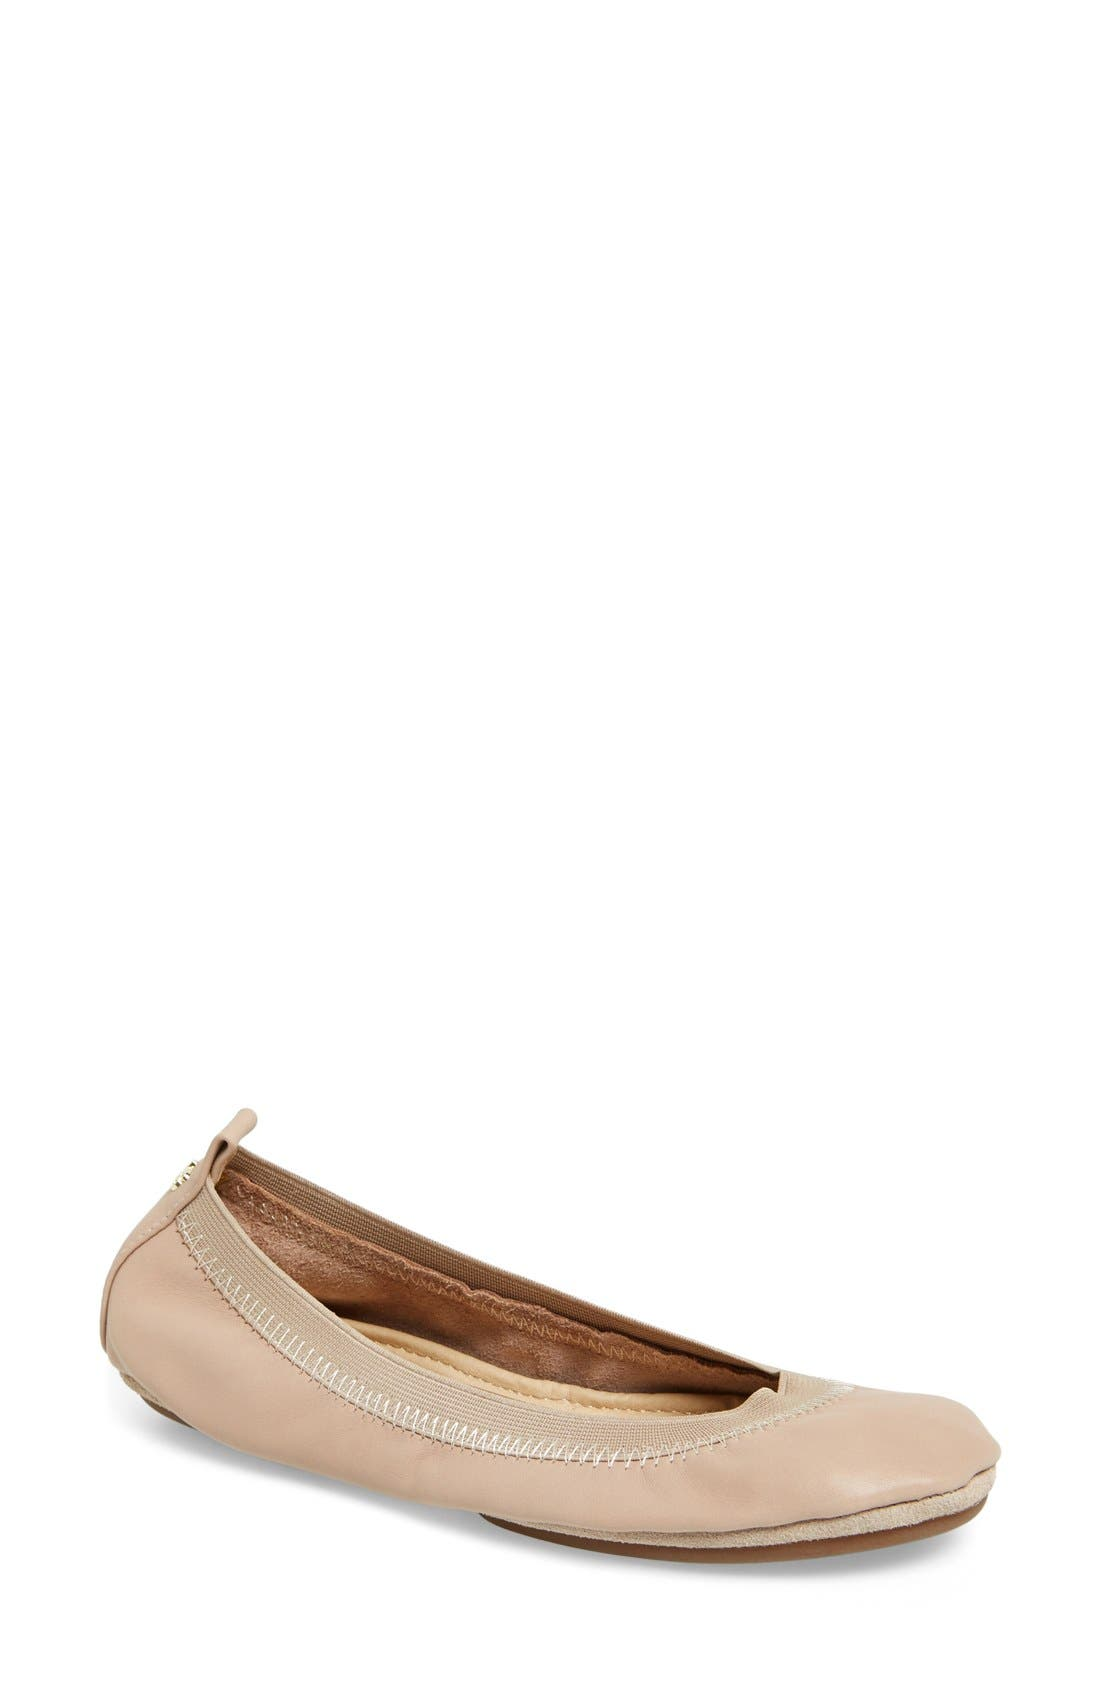 Alternate Image 1 Selected - Yosi Samra 'Samara' Foldable Ballet Flat (Women)